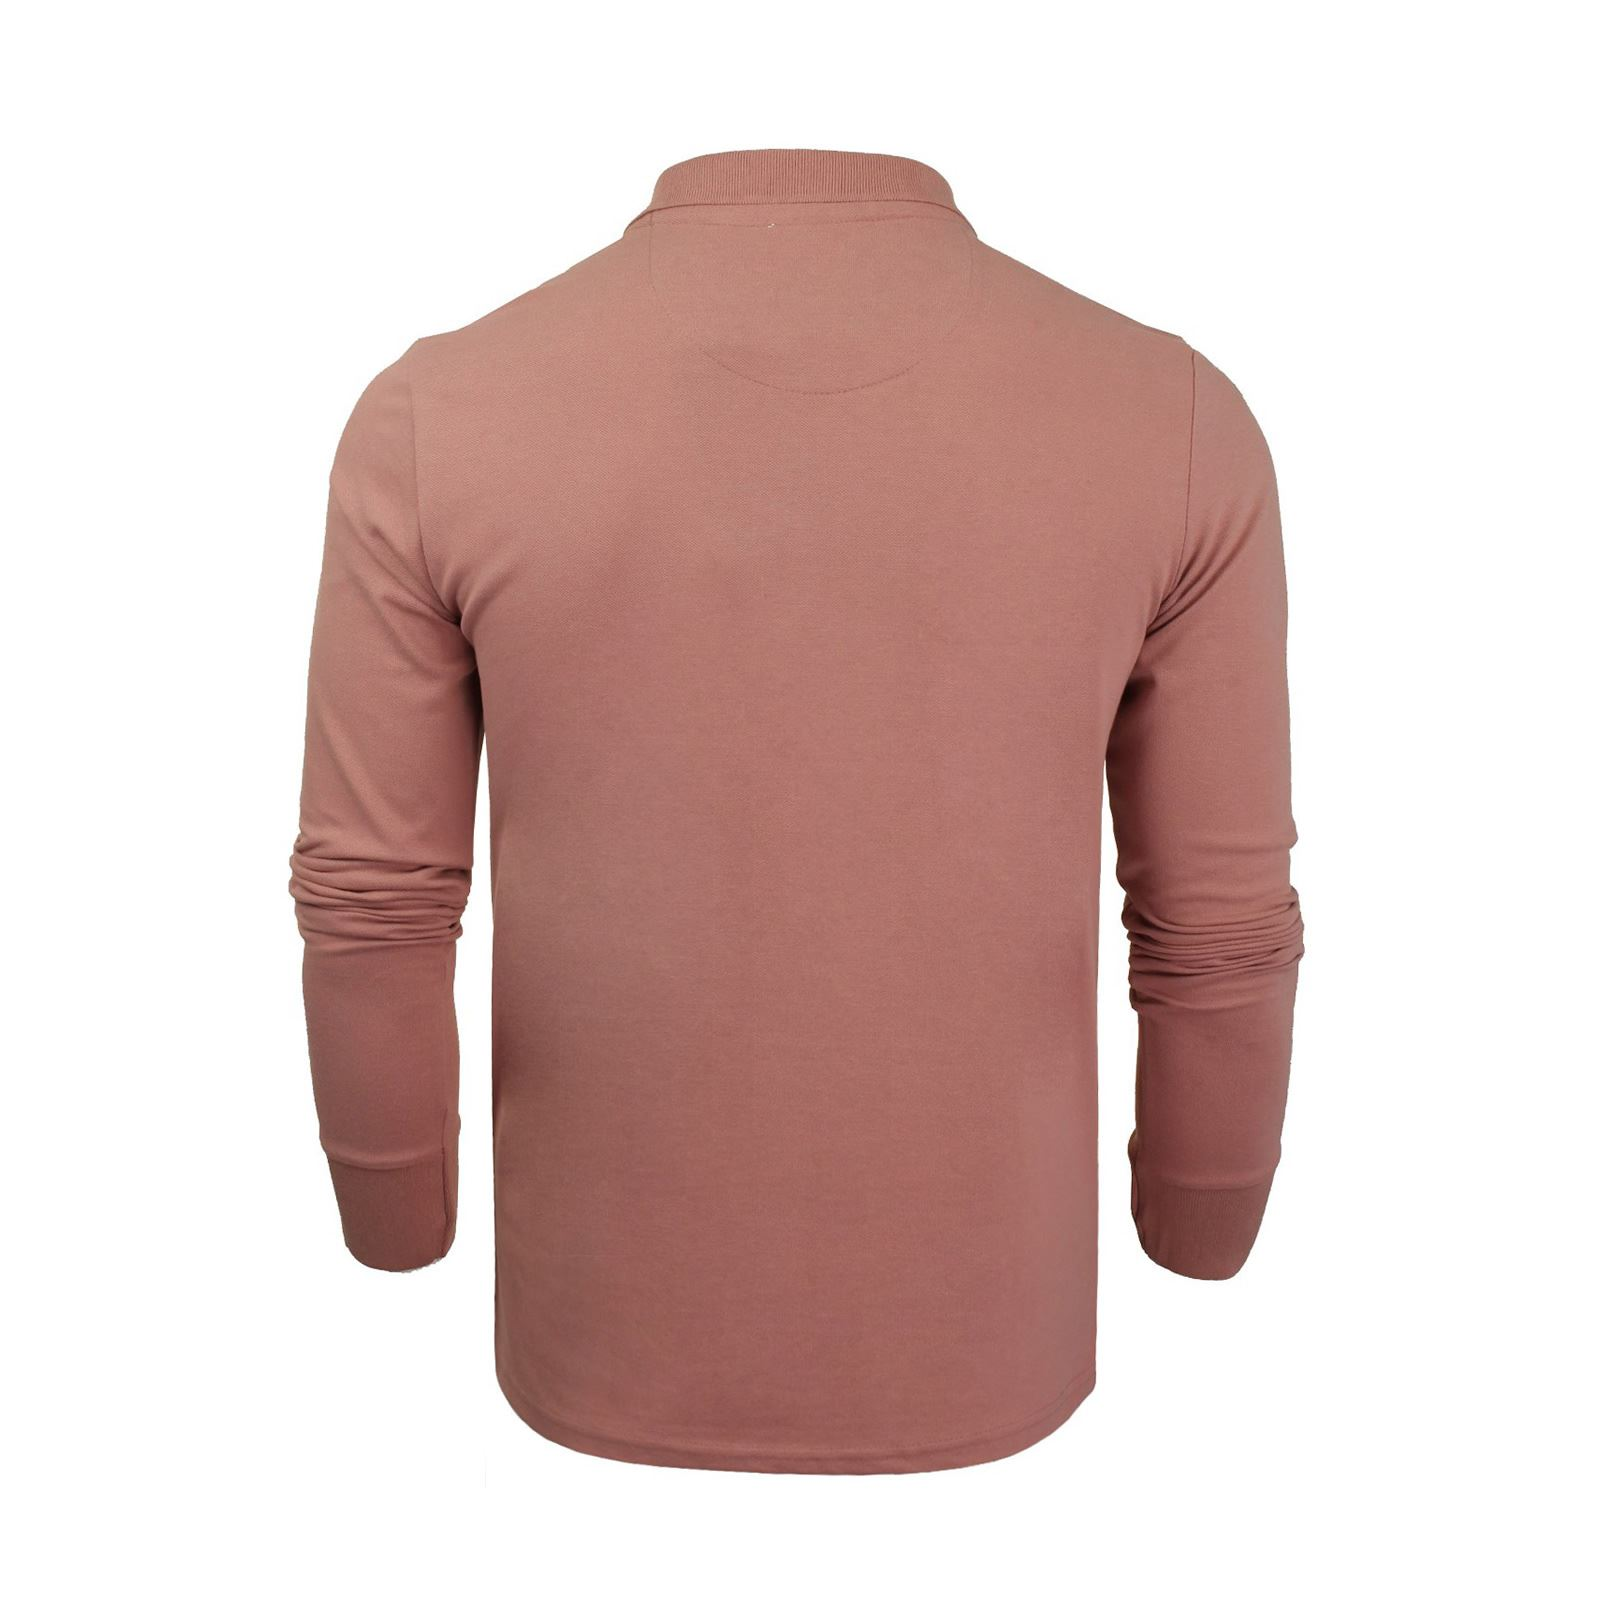 Mens-Polo-Shirt-Brave-Soul-Long-Sleeve-Collared-Top-In-Various-Styles thumbnail 94